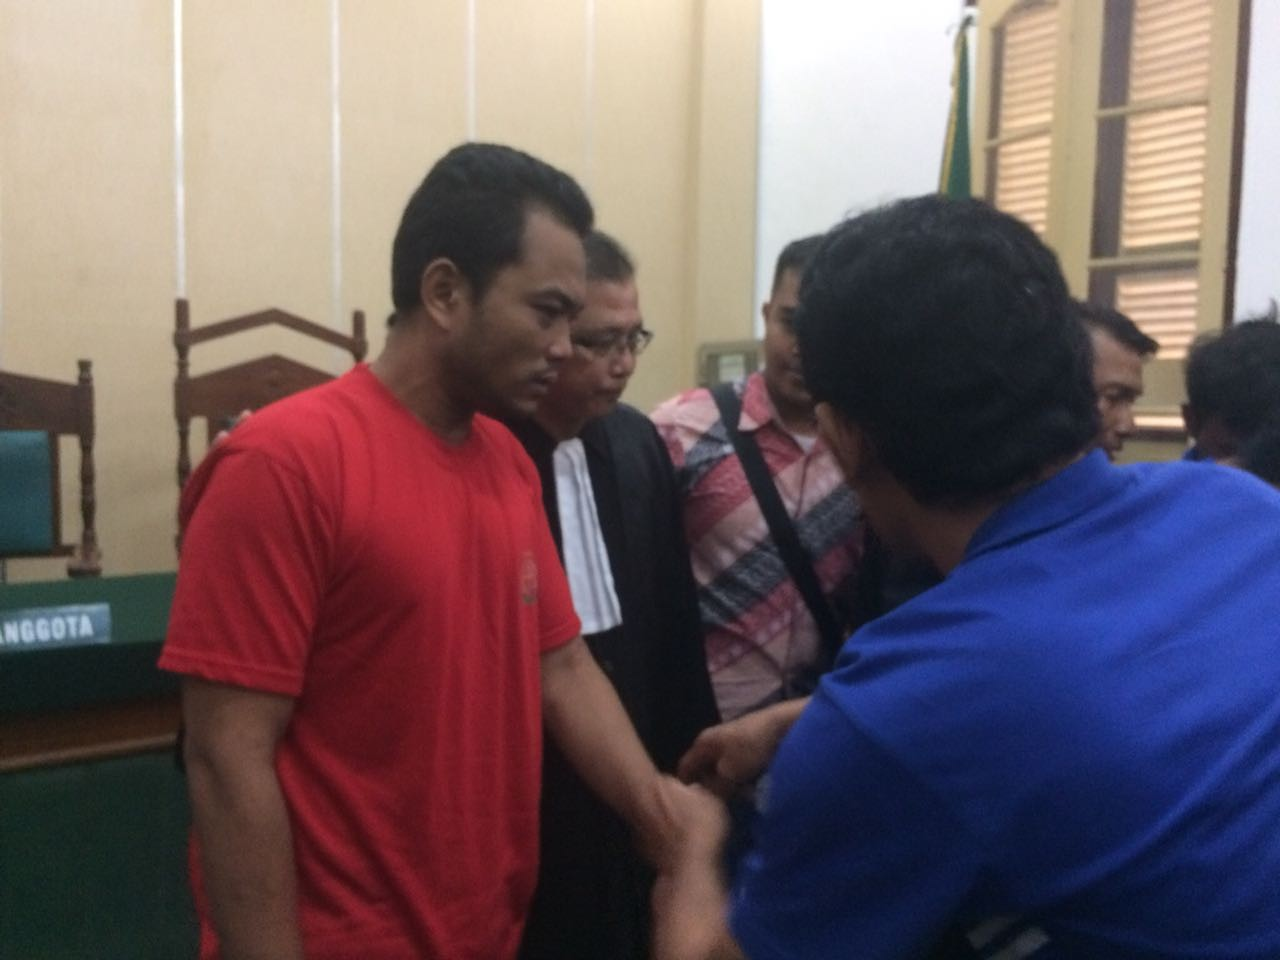 Man behind Medan family murder sentenced to death